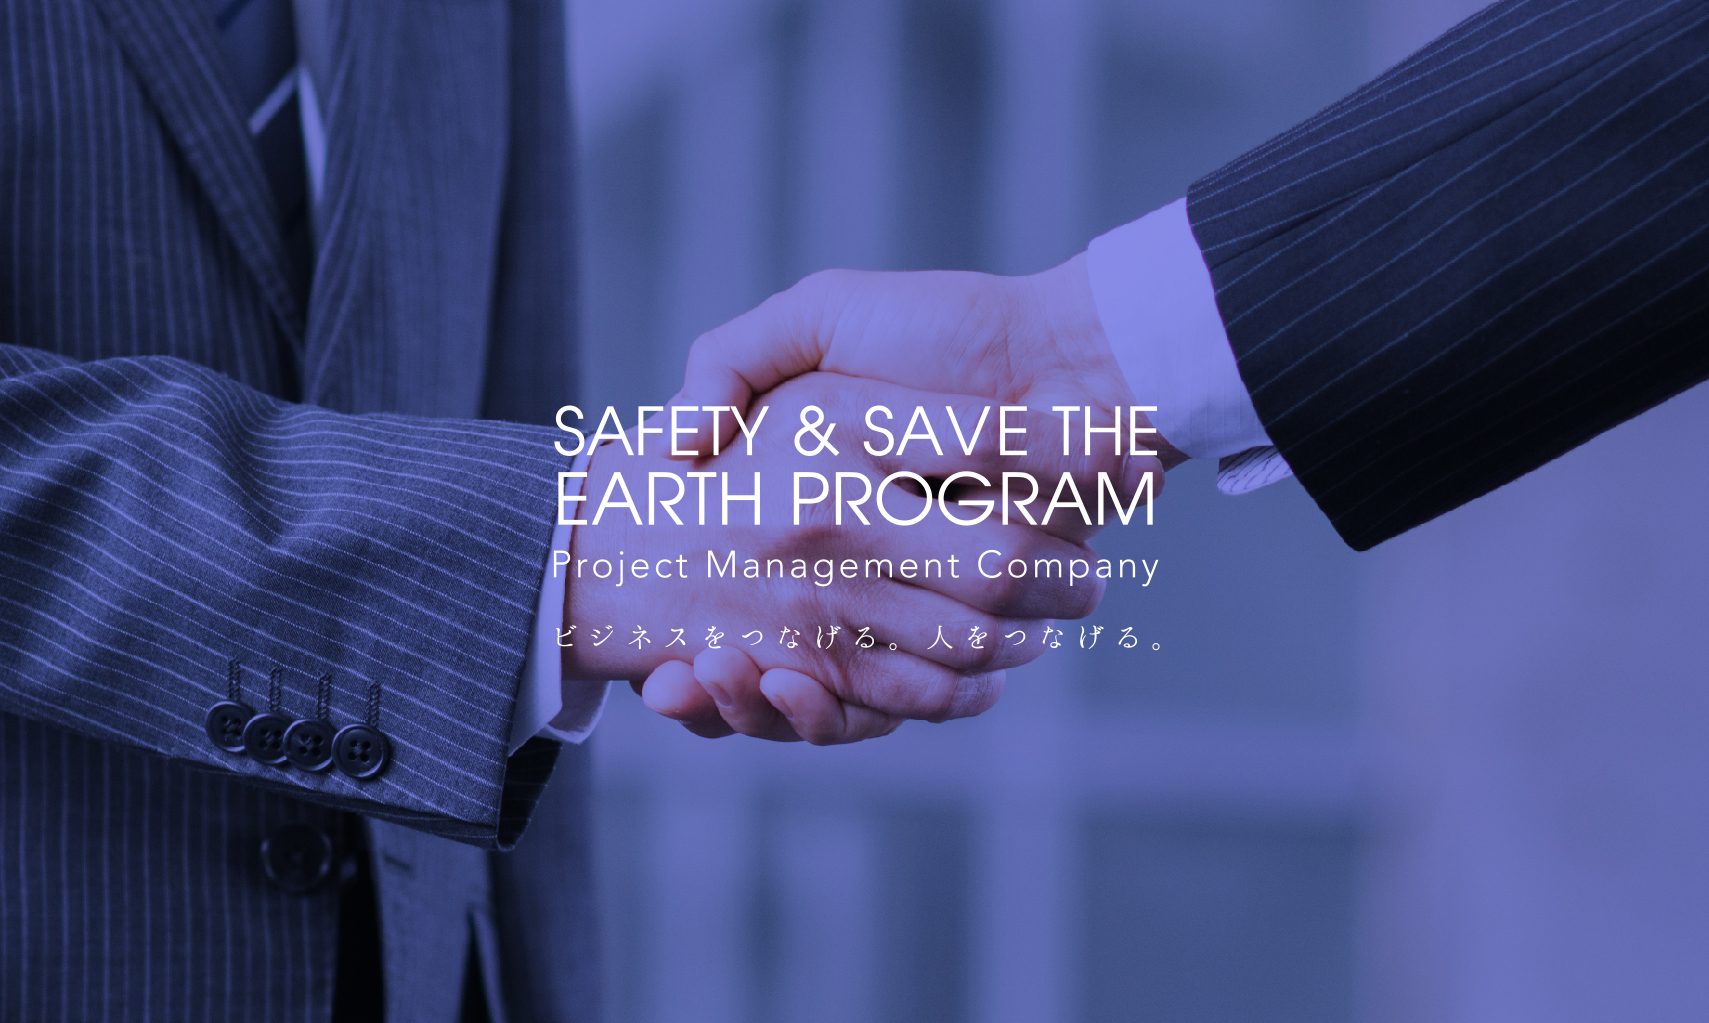 SAFETY & SAVE THE EARTH PROGRAM